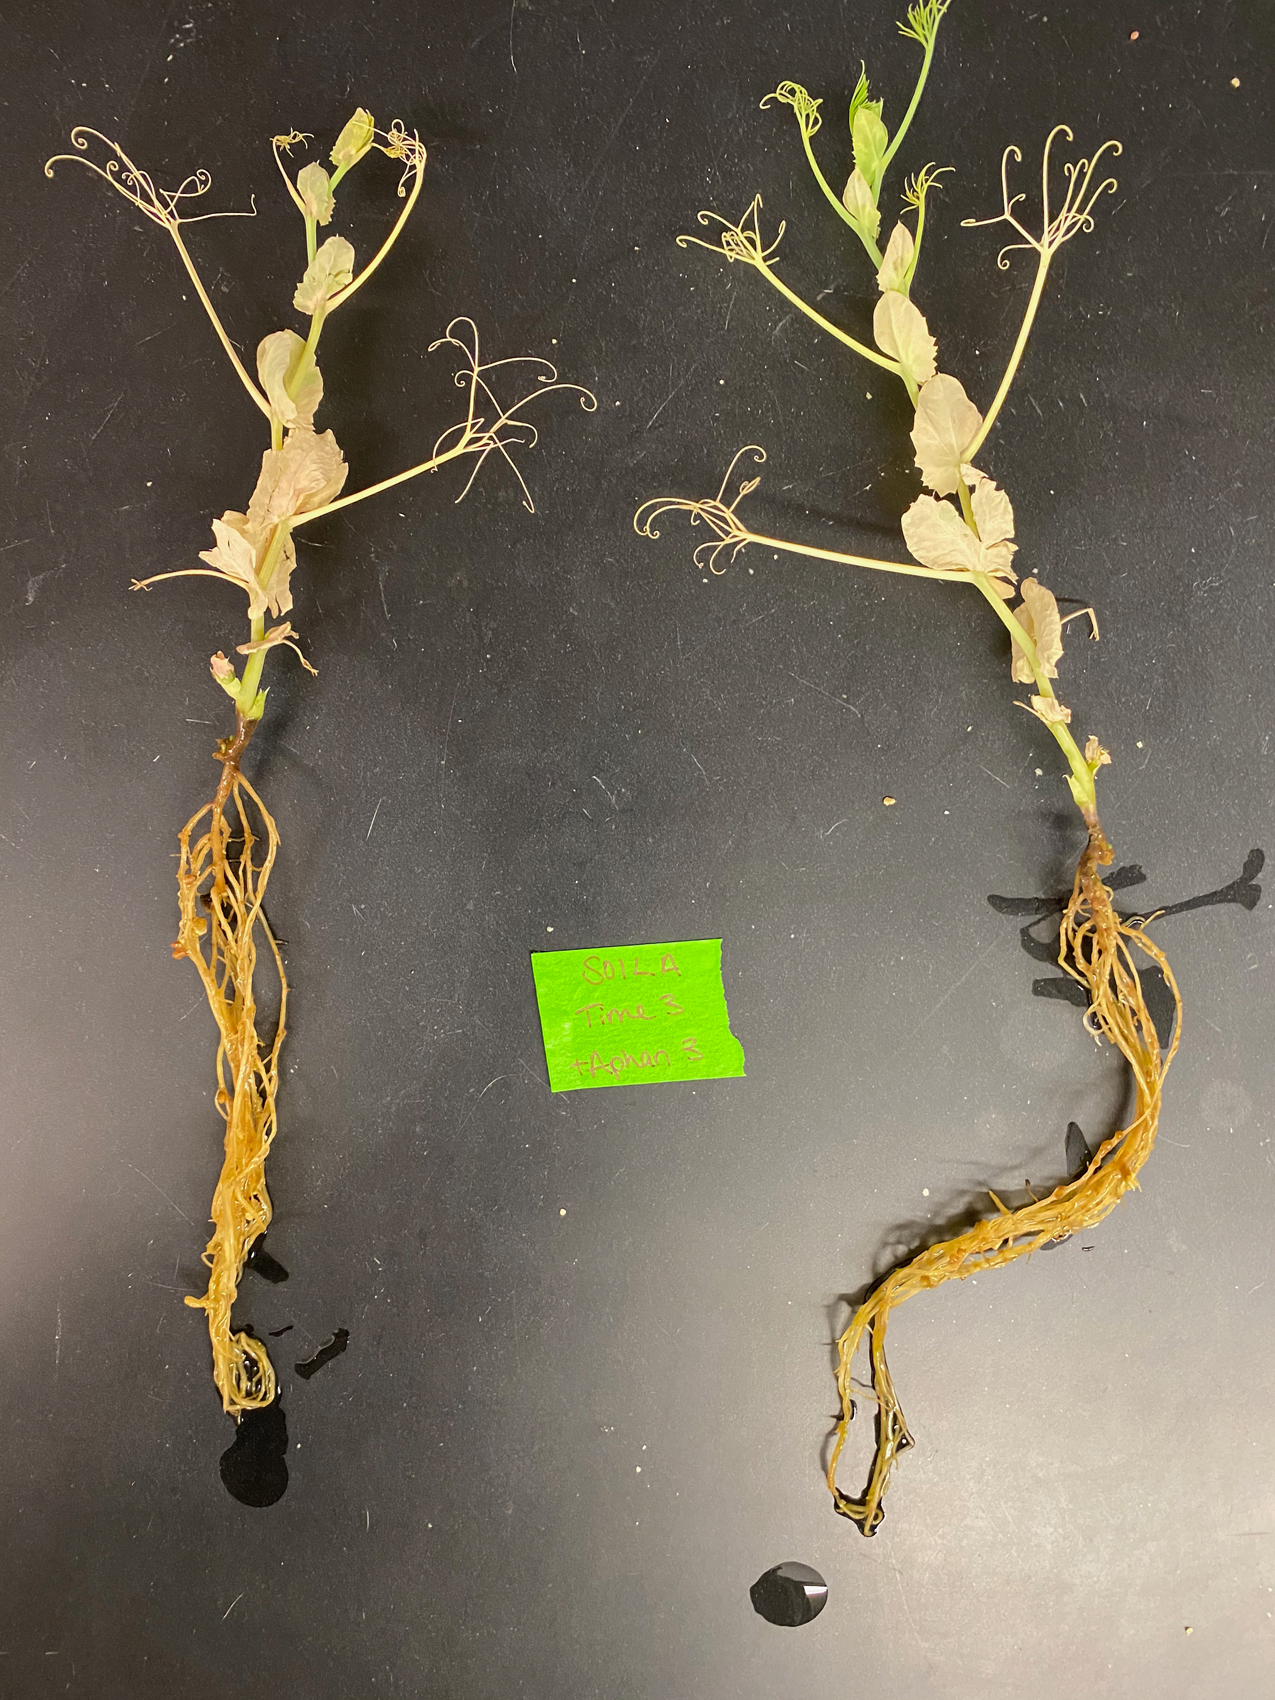 A pea plant infected with Aphanomyces. The bleached leaves are darker and honey brown roots are symptoms of infection.